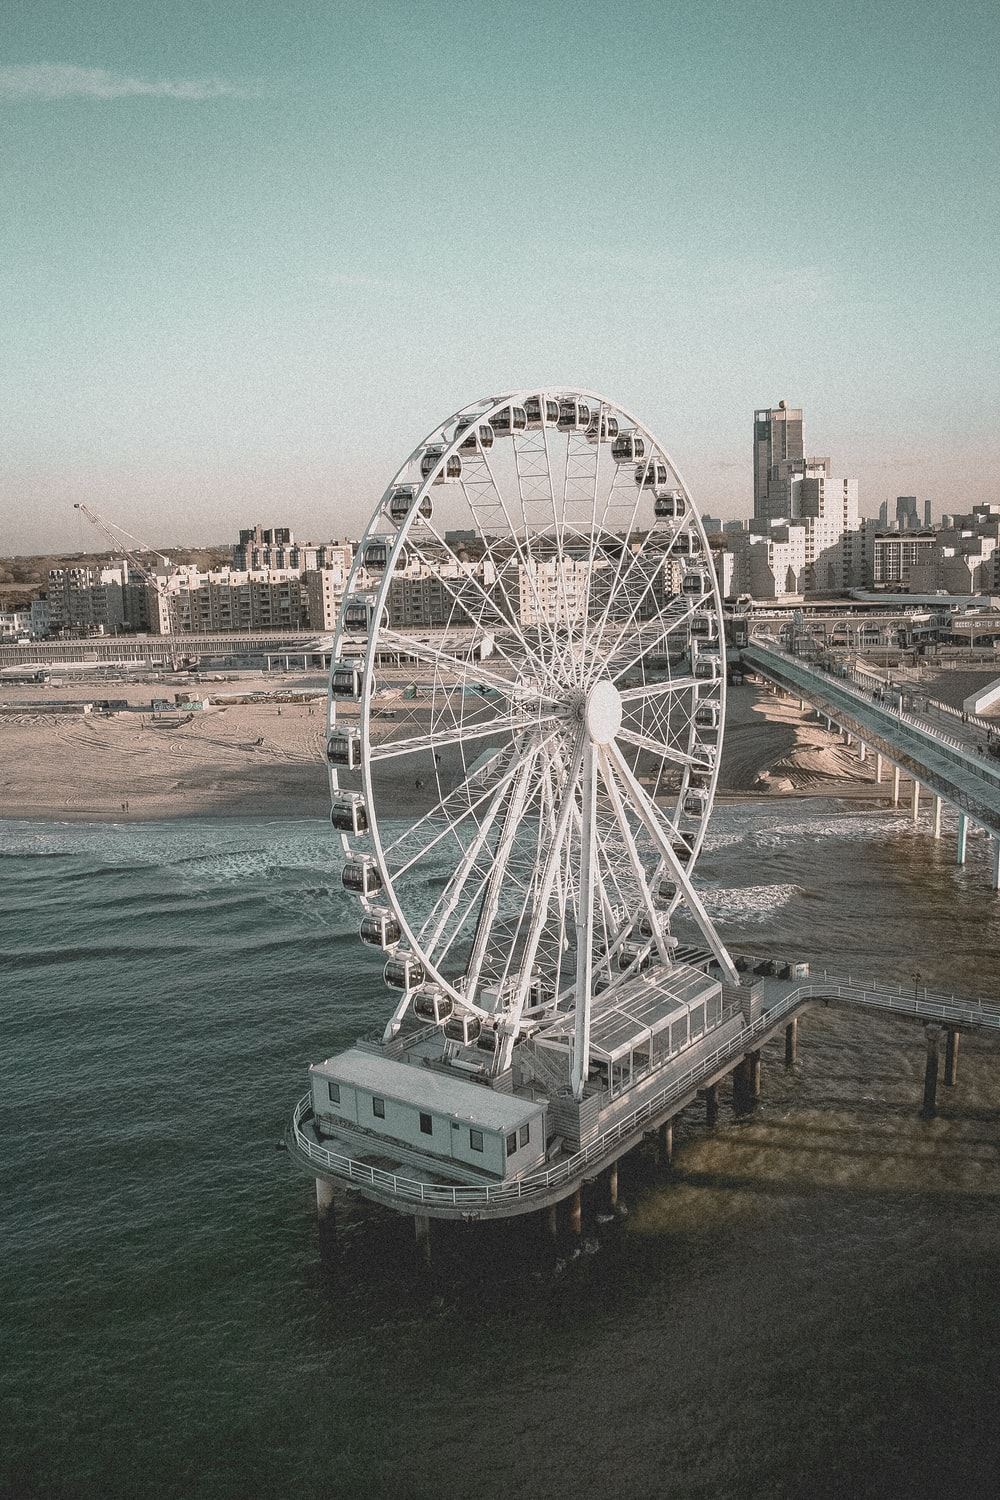 white ferris wheel near body of water